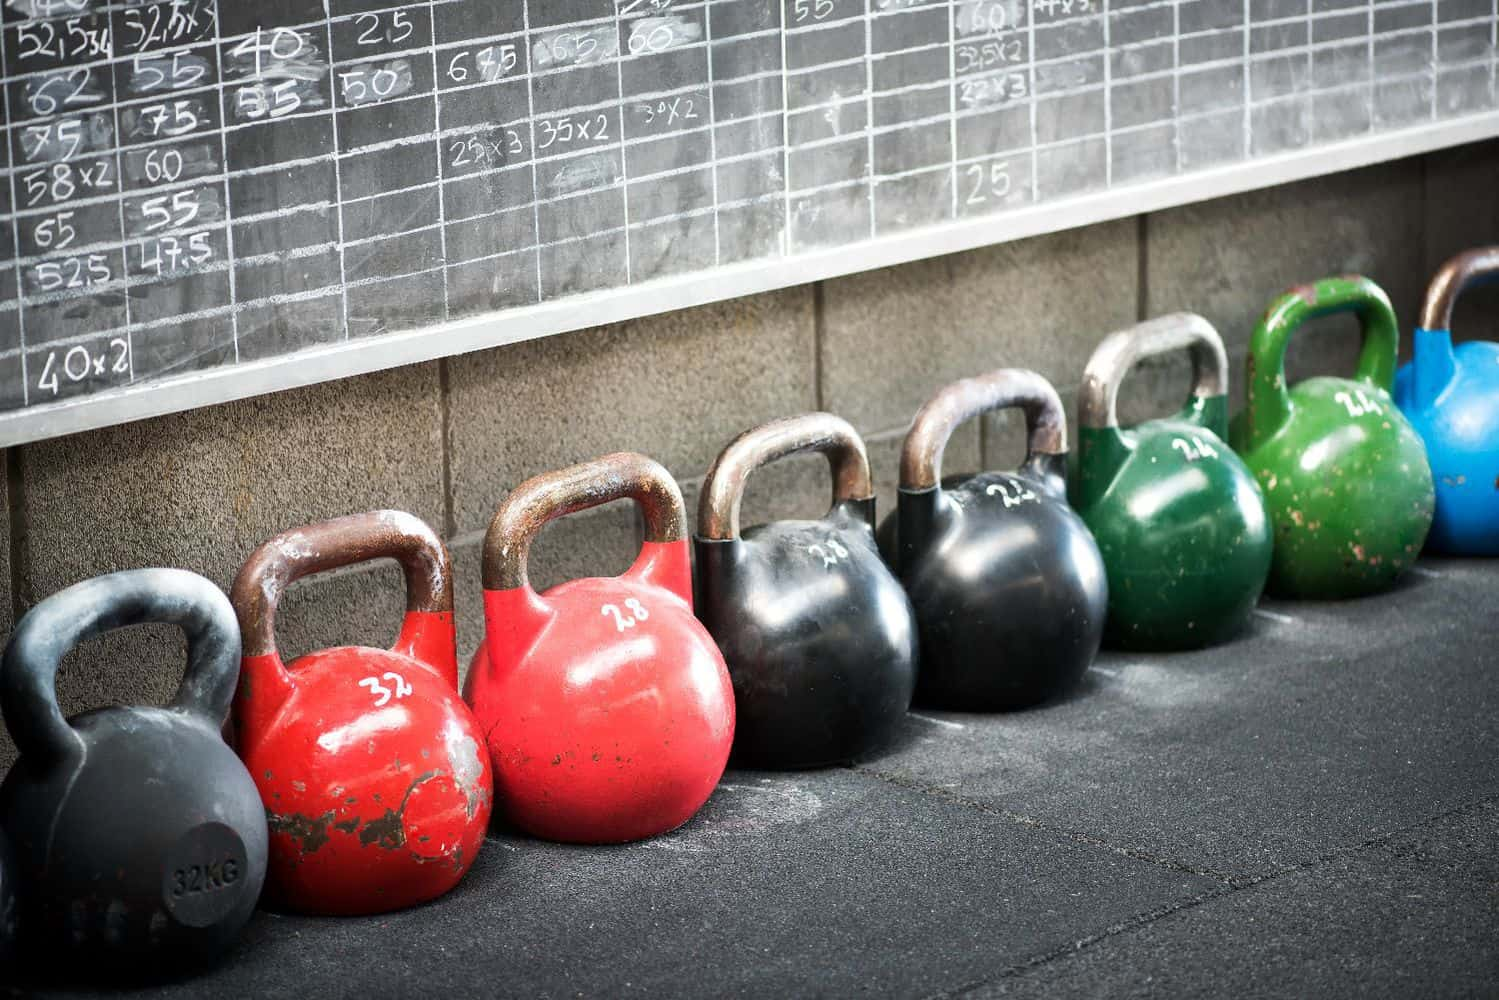 Row Of Colorful Kettlebell Weights In A Gym